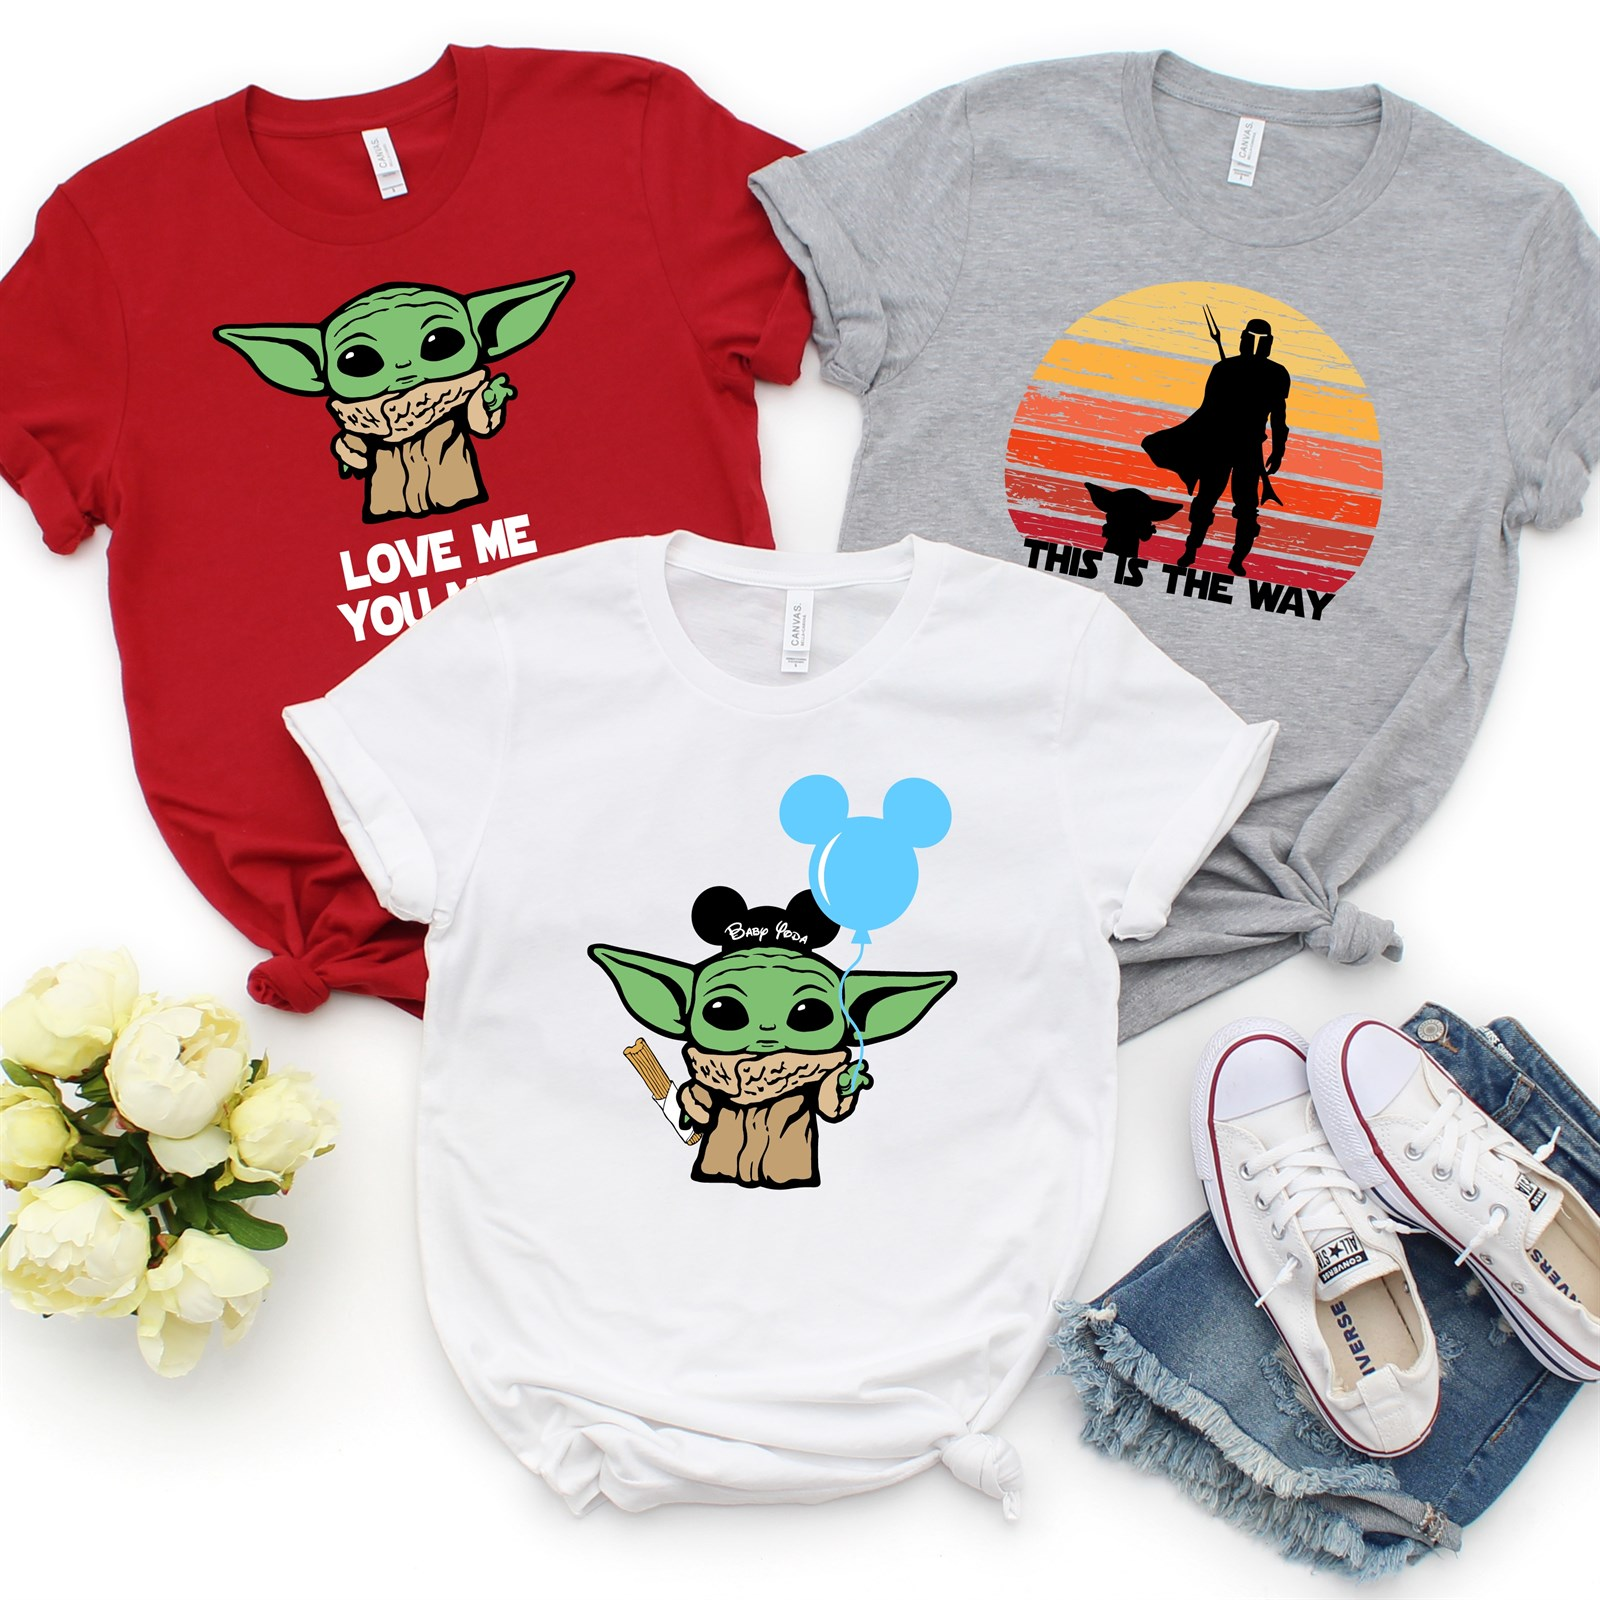 Baby Yoda Shirts Only $14.99 w/ Free Shipping